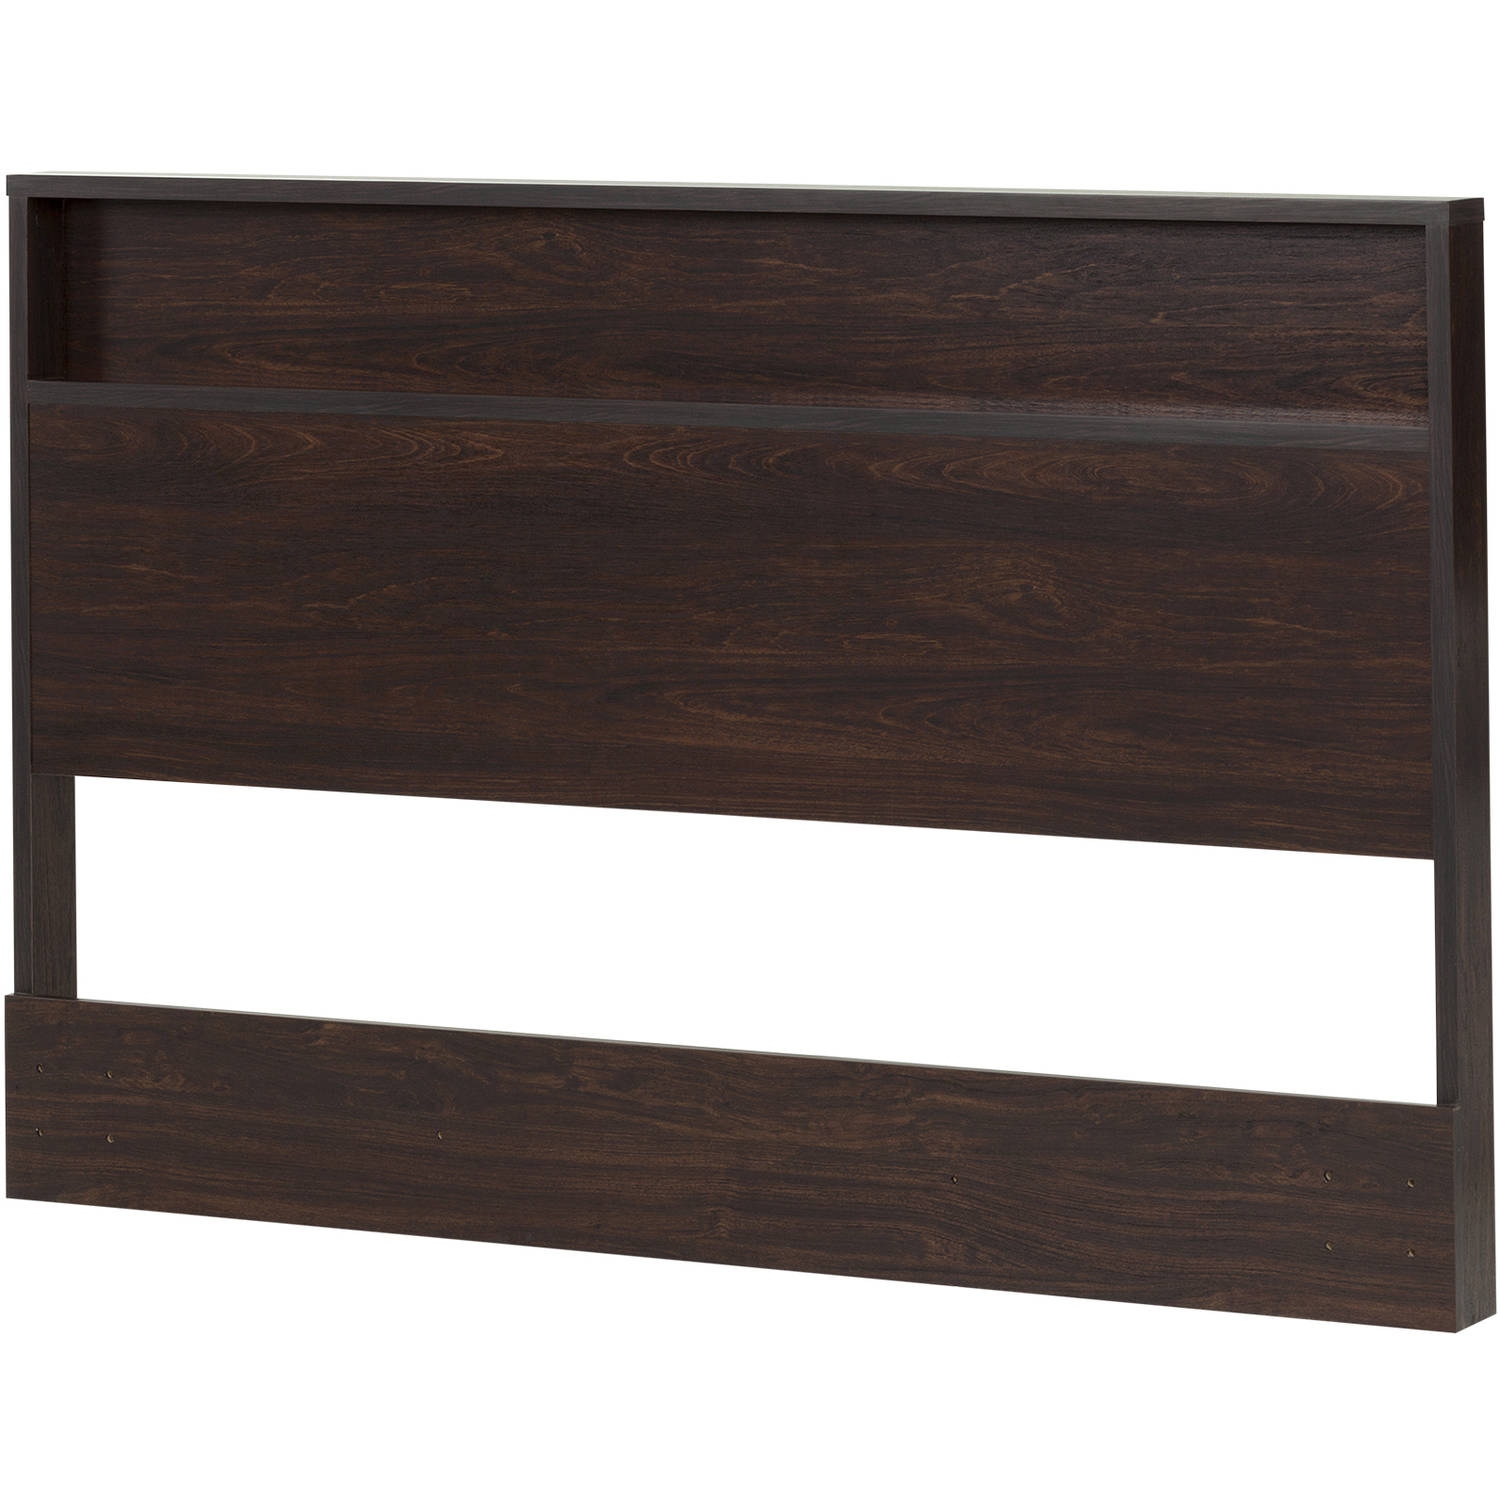 South Shore Holland Full/Queen Headboard, 54/60u0027u0027, Multiple Finishes    Walmart.com